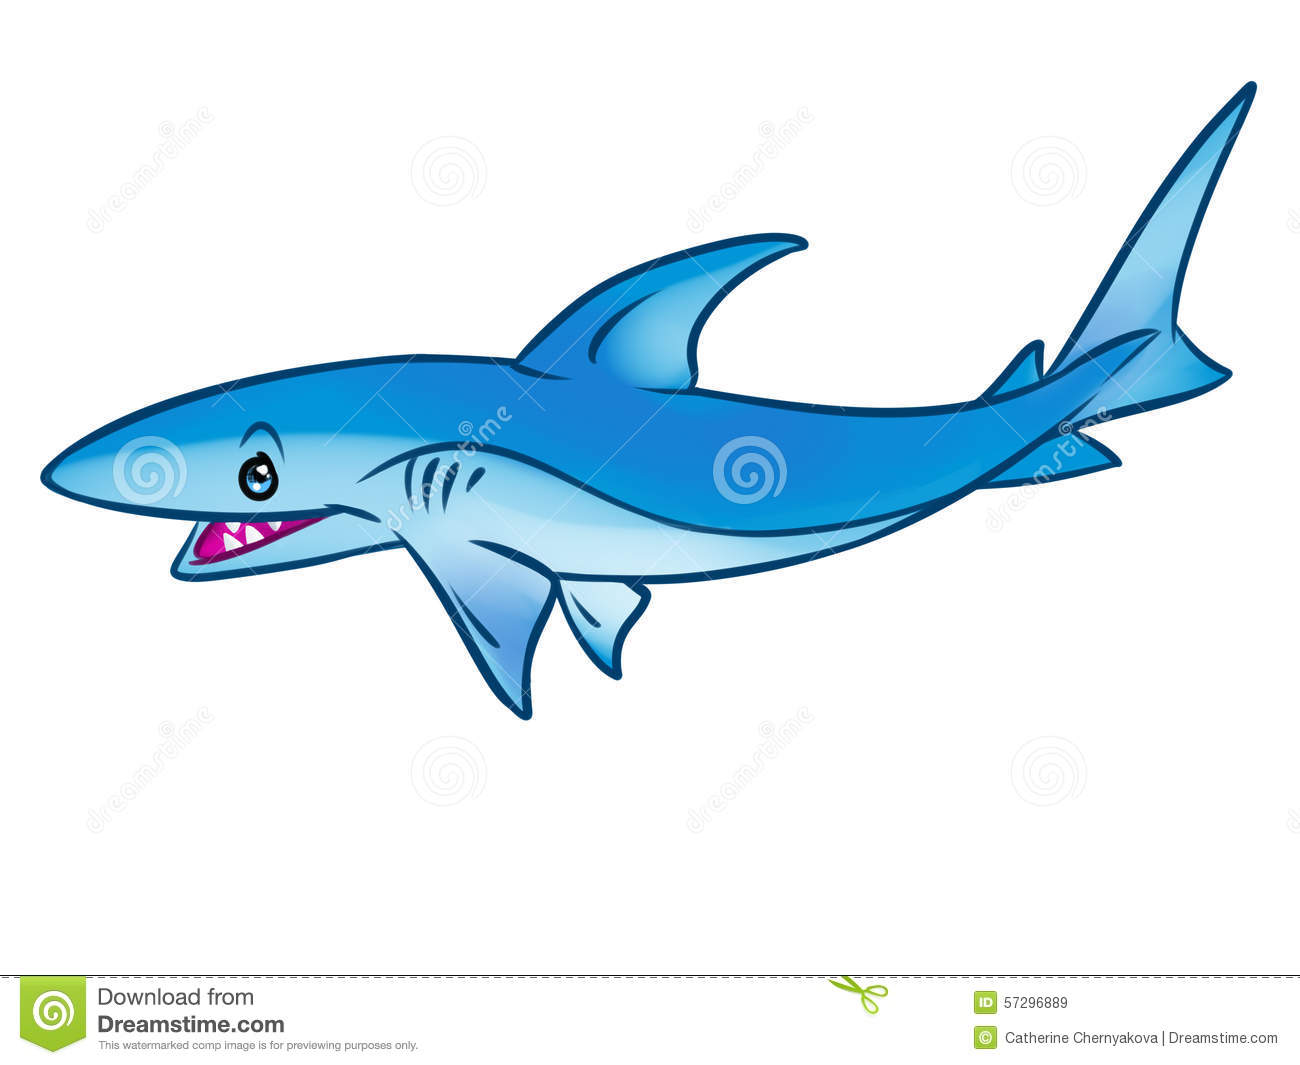 Fish shark cartoon illustration stock illustration illustration of fish shark cartoon illustration thecheapjerseys Gallery